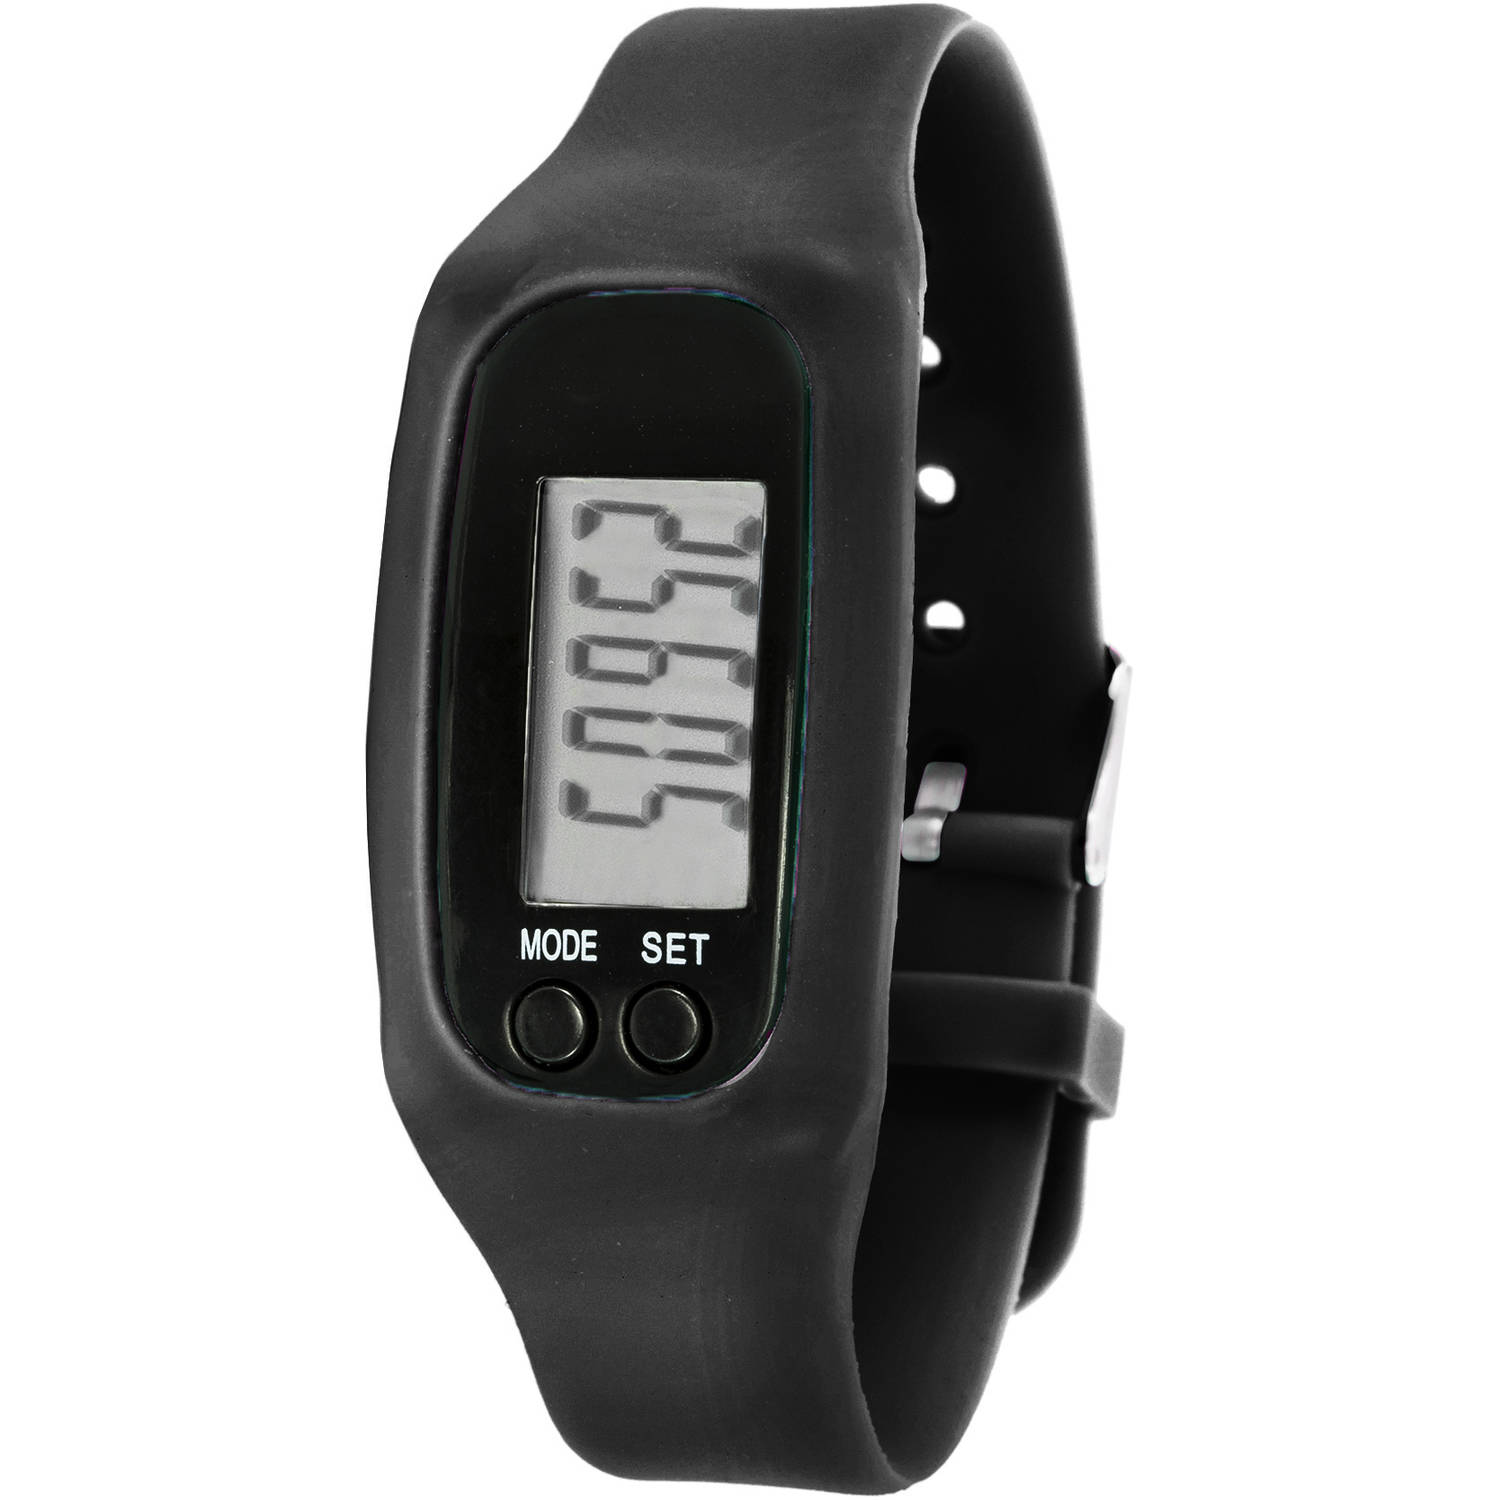 Zunammy Digital Activity Tracker Watch, Multiple Colors